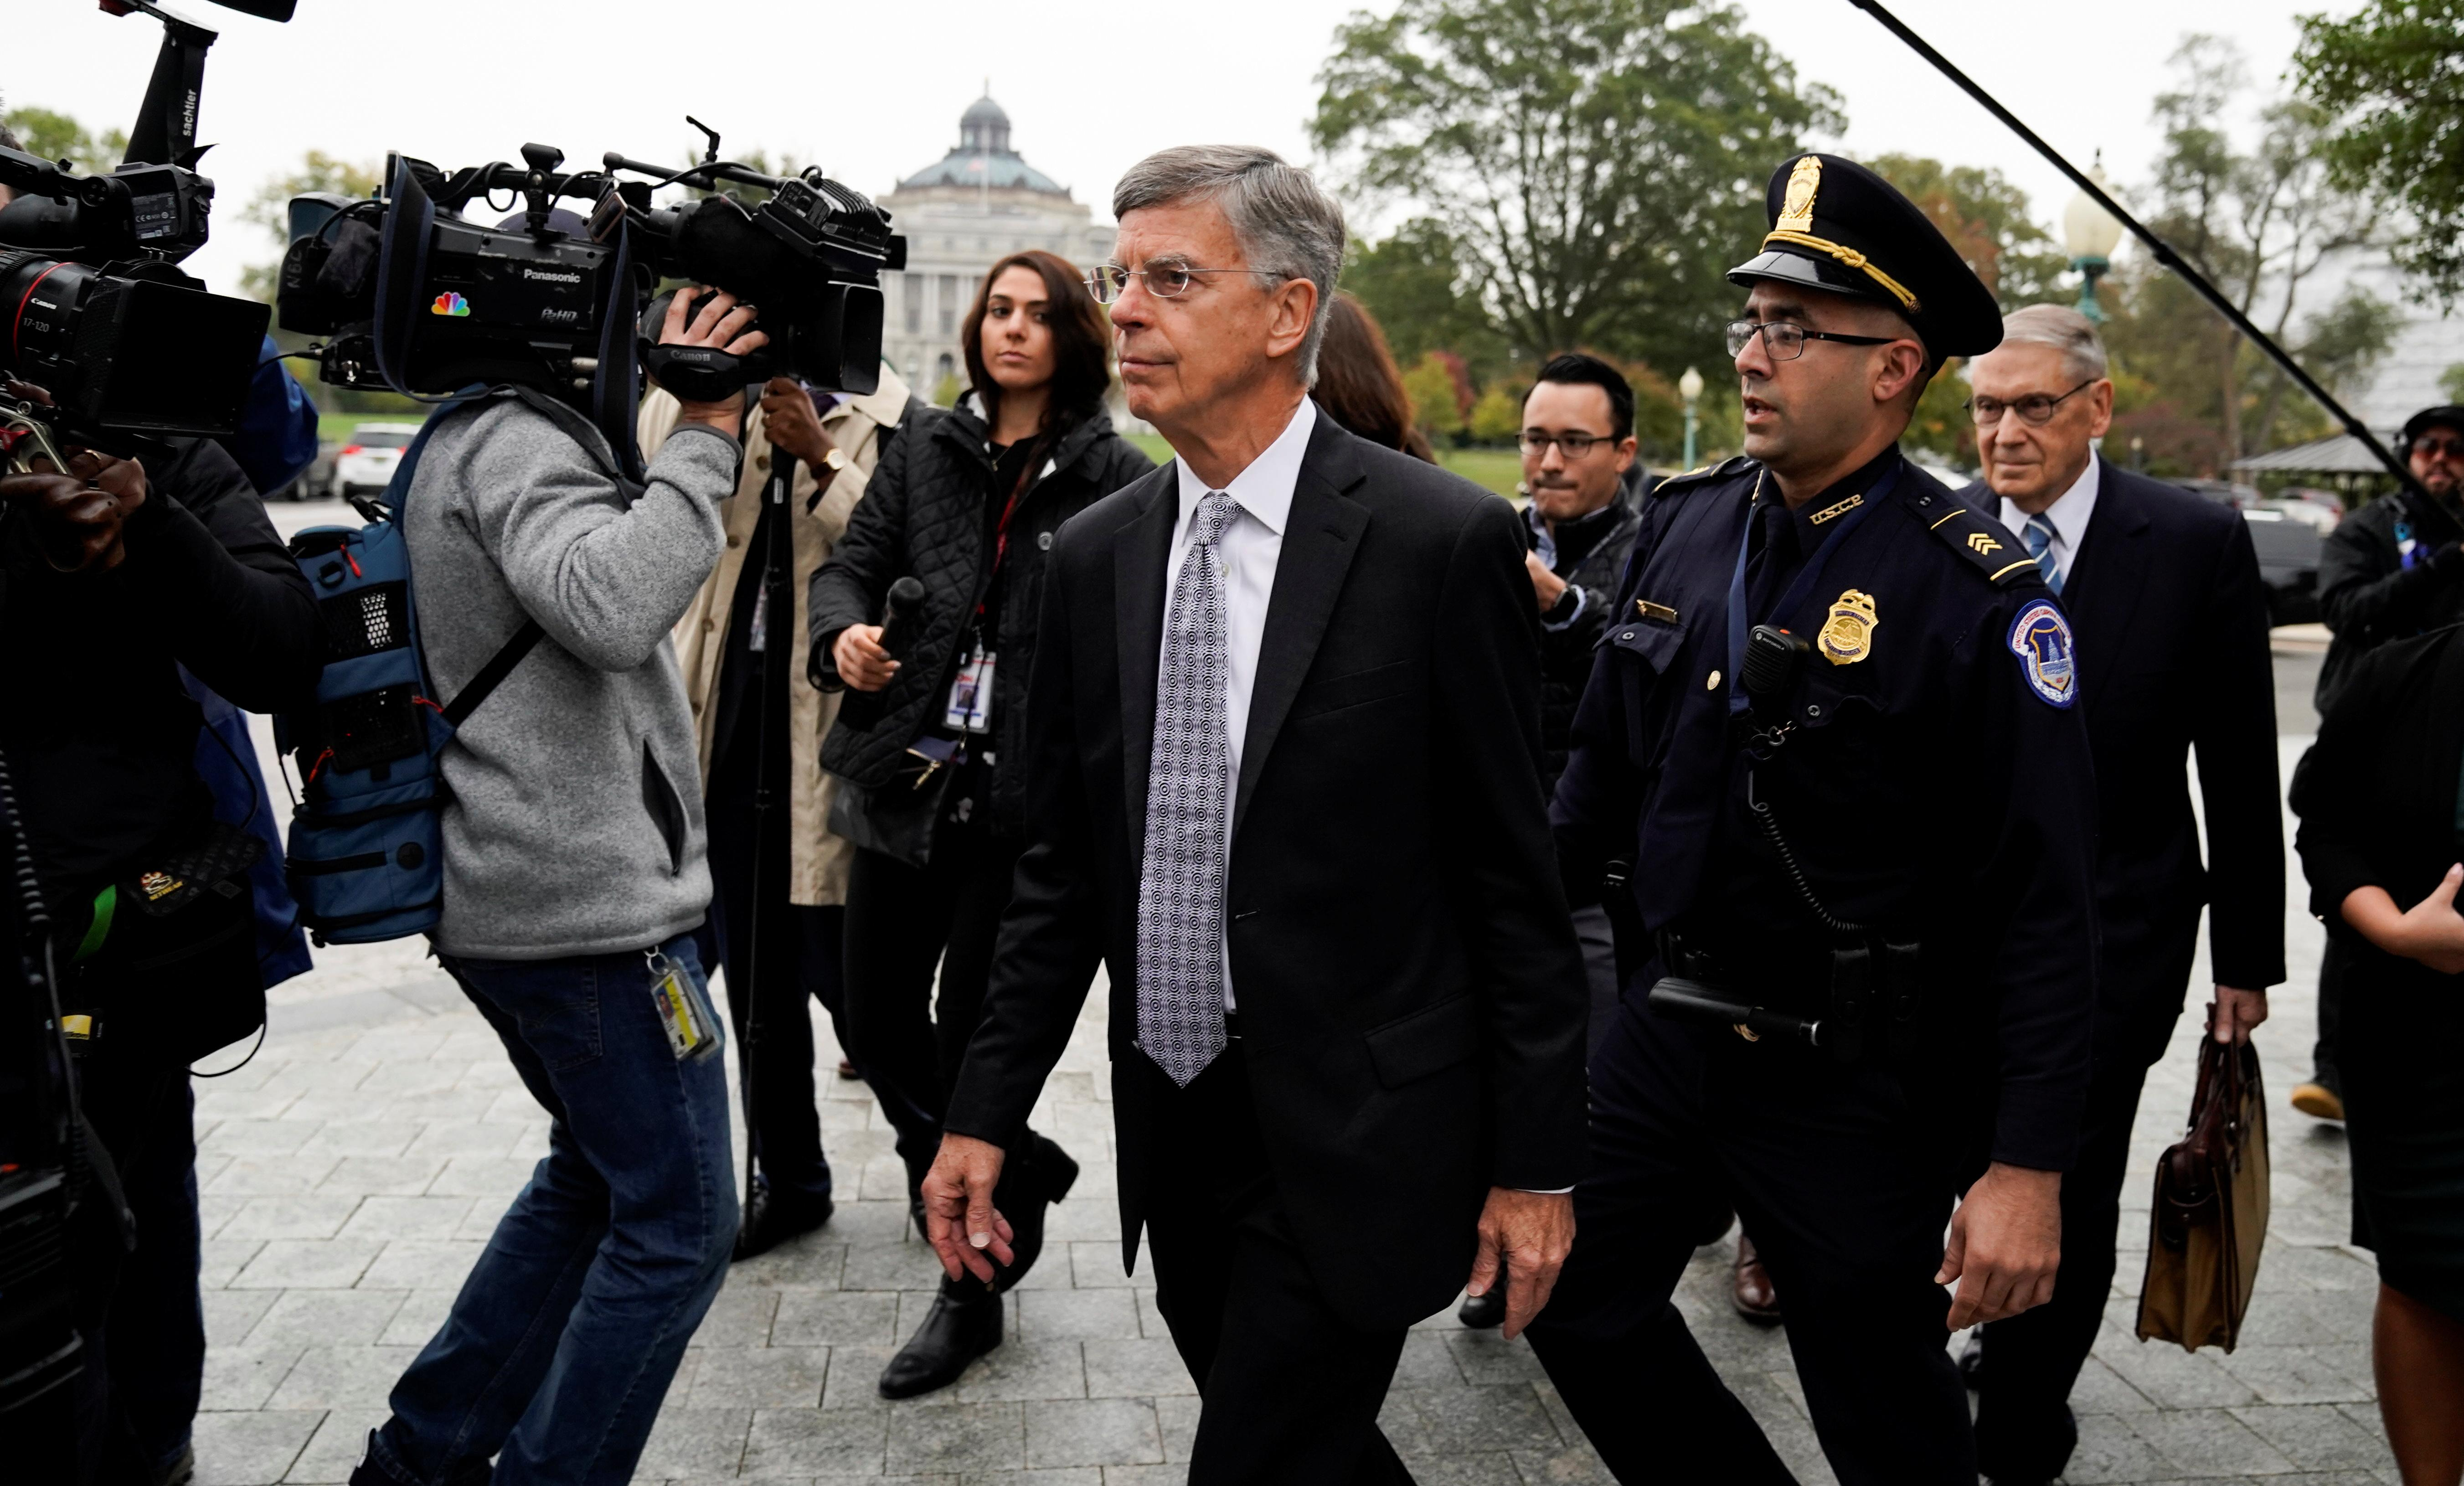 Pivotal witness testifies in impeachment probe; lawmakers denounce...